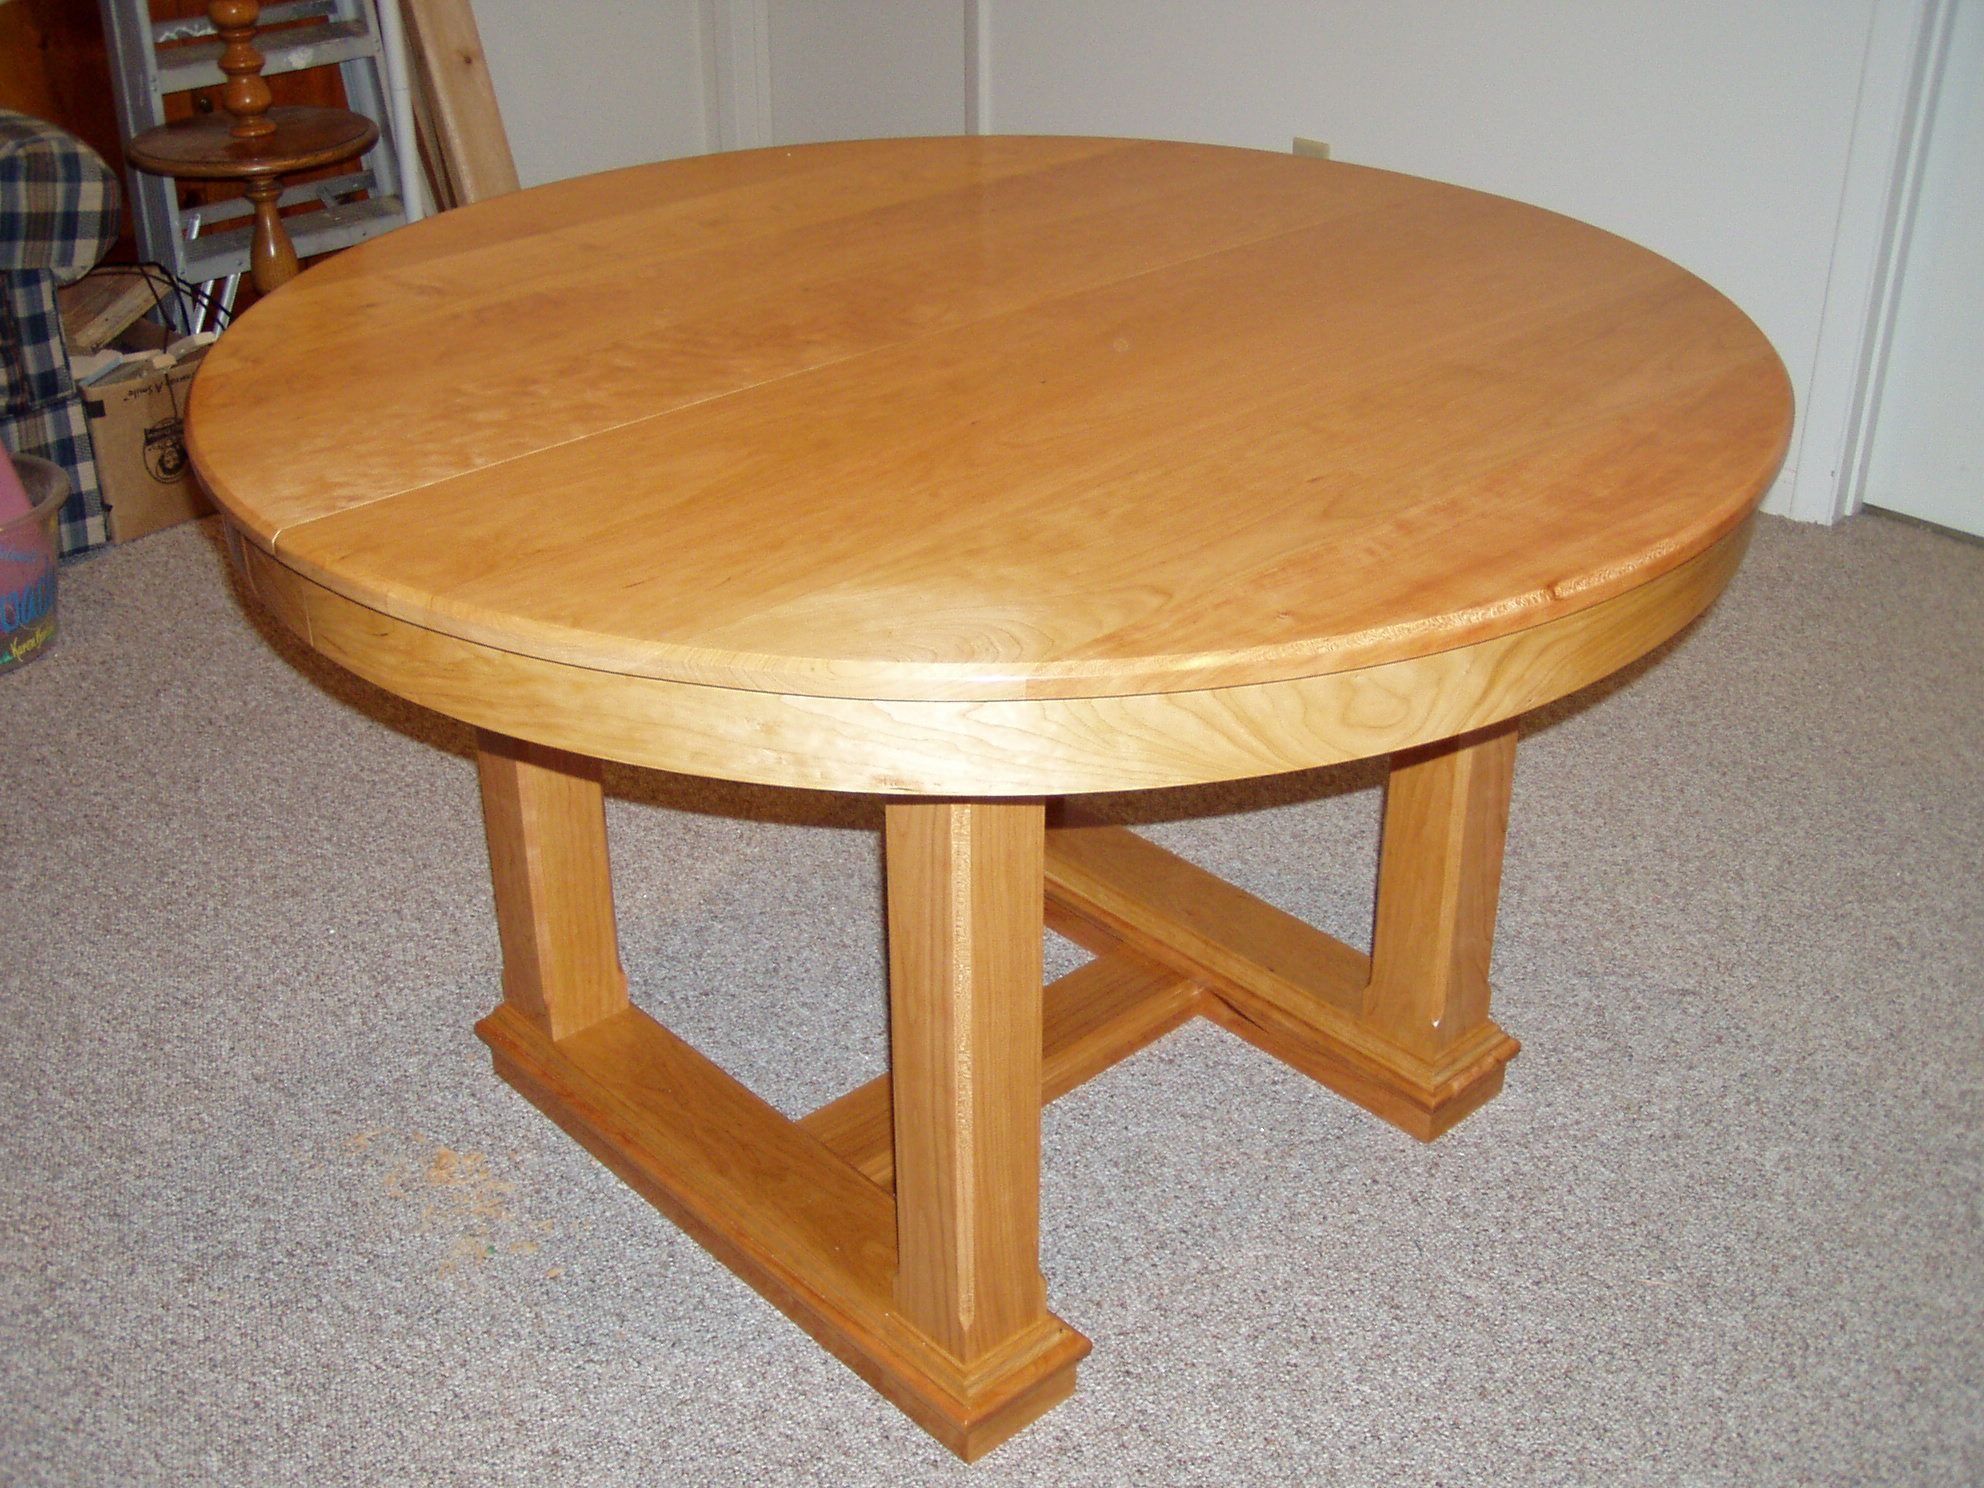 Round Dining Table in Cherry Butterfly Leaf in stored Position